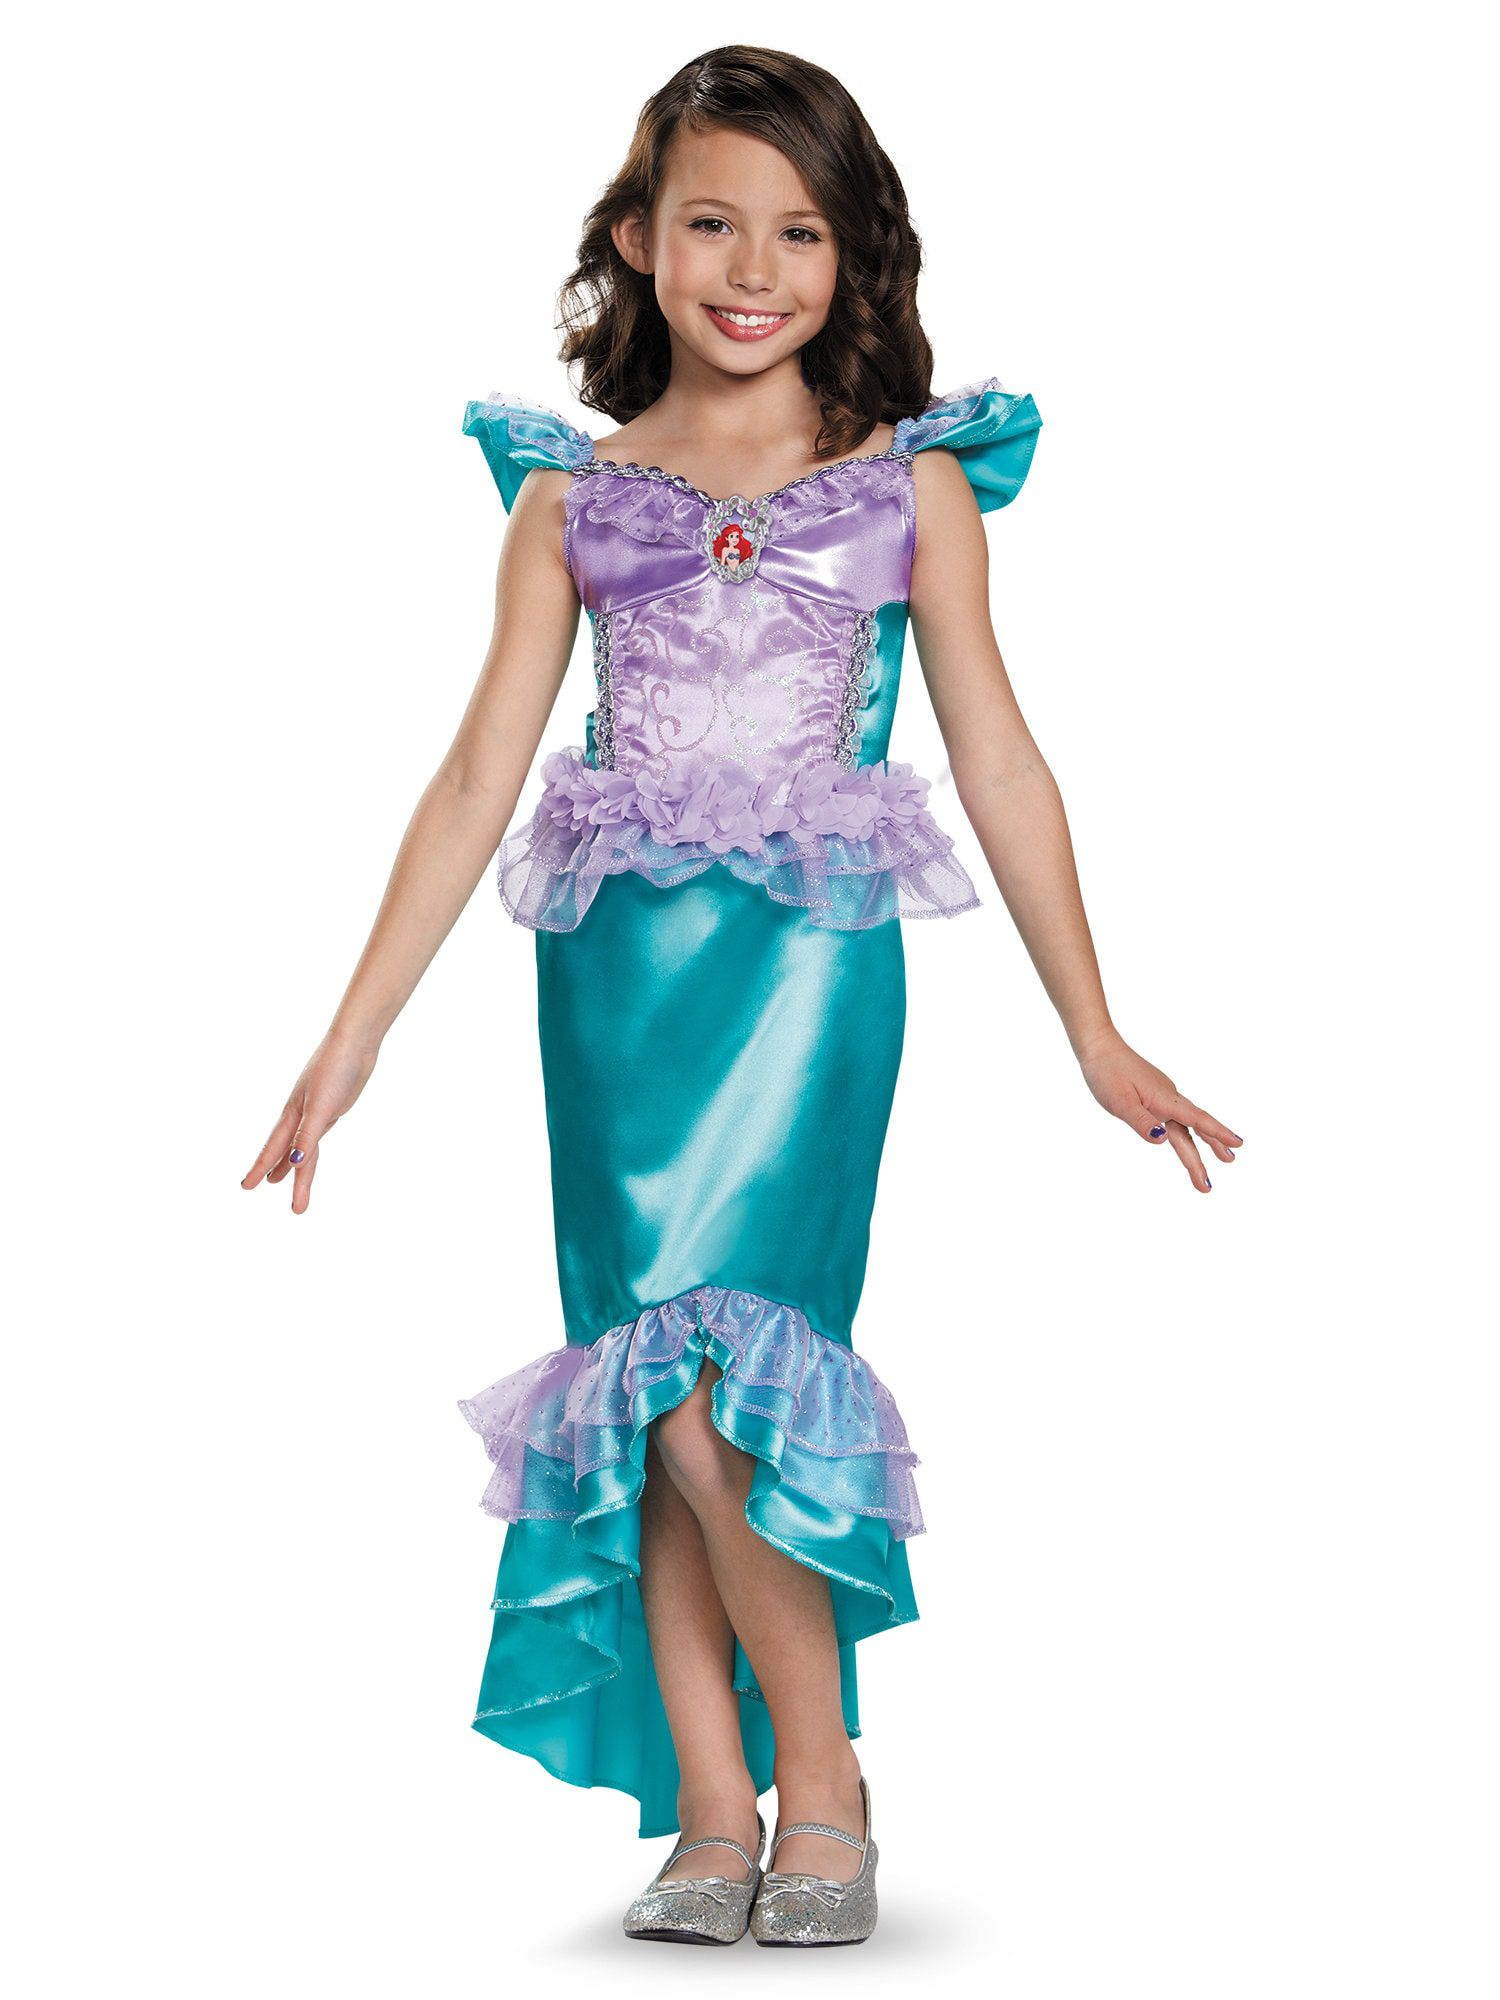 Disneyu0027s The Little Mermaid Ariel Classic Girls Costume  sc 1 st  Wholesale Halloween Costumes & Disneyu0027s The Little Mermaid Ariel Classic Girls Costume - Girls ...